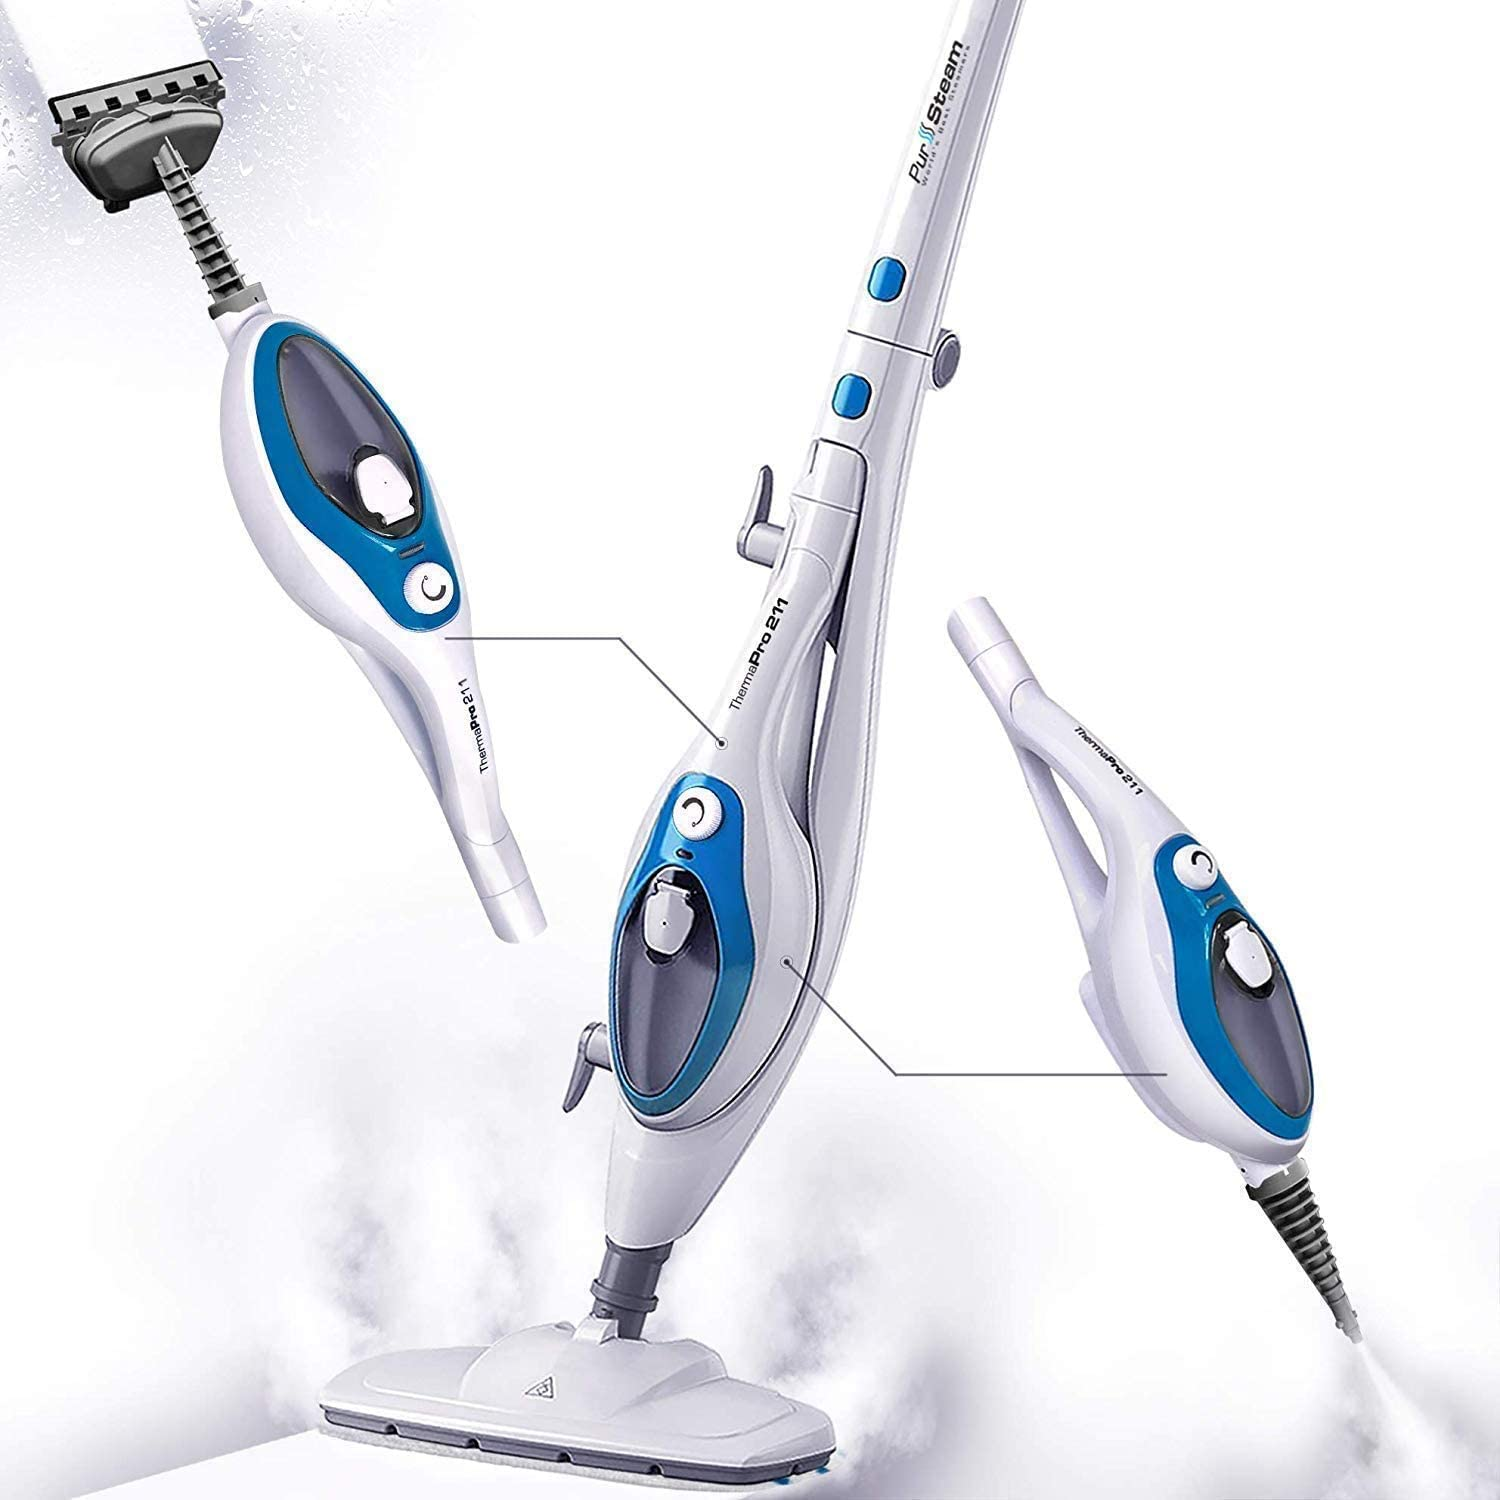 Review of - Steam Mop Cleaner ThermaPro 10-in-1 with Convenient Detachable Handheld Unit by PurSteam